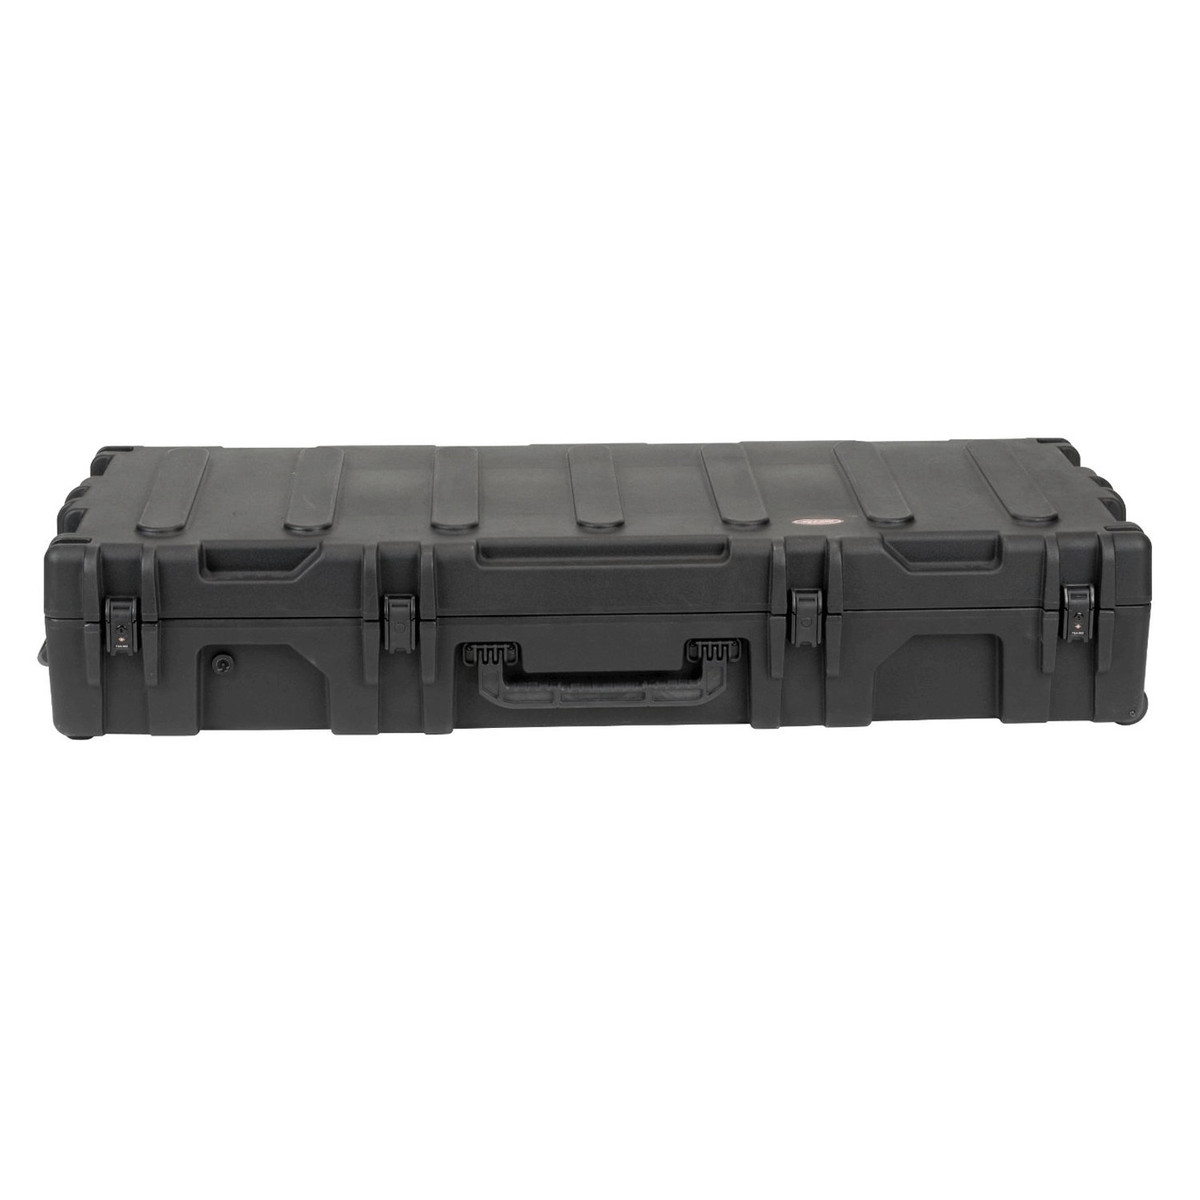 Yamaha Motif Xs8 DISC SKB Roto Case for 88-Key Keyboard with Wheels at Gear4music.com